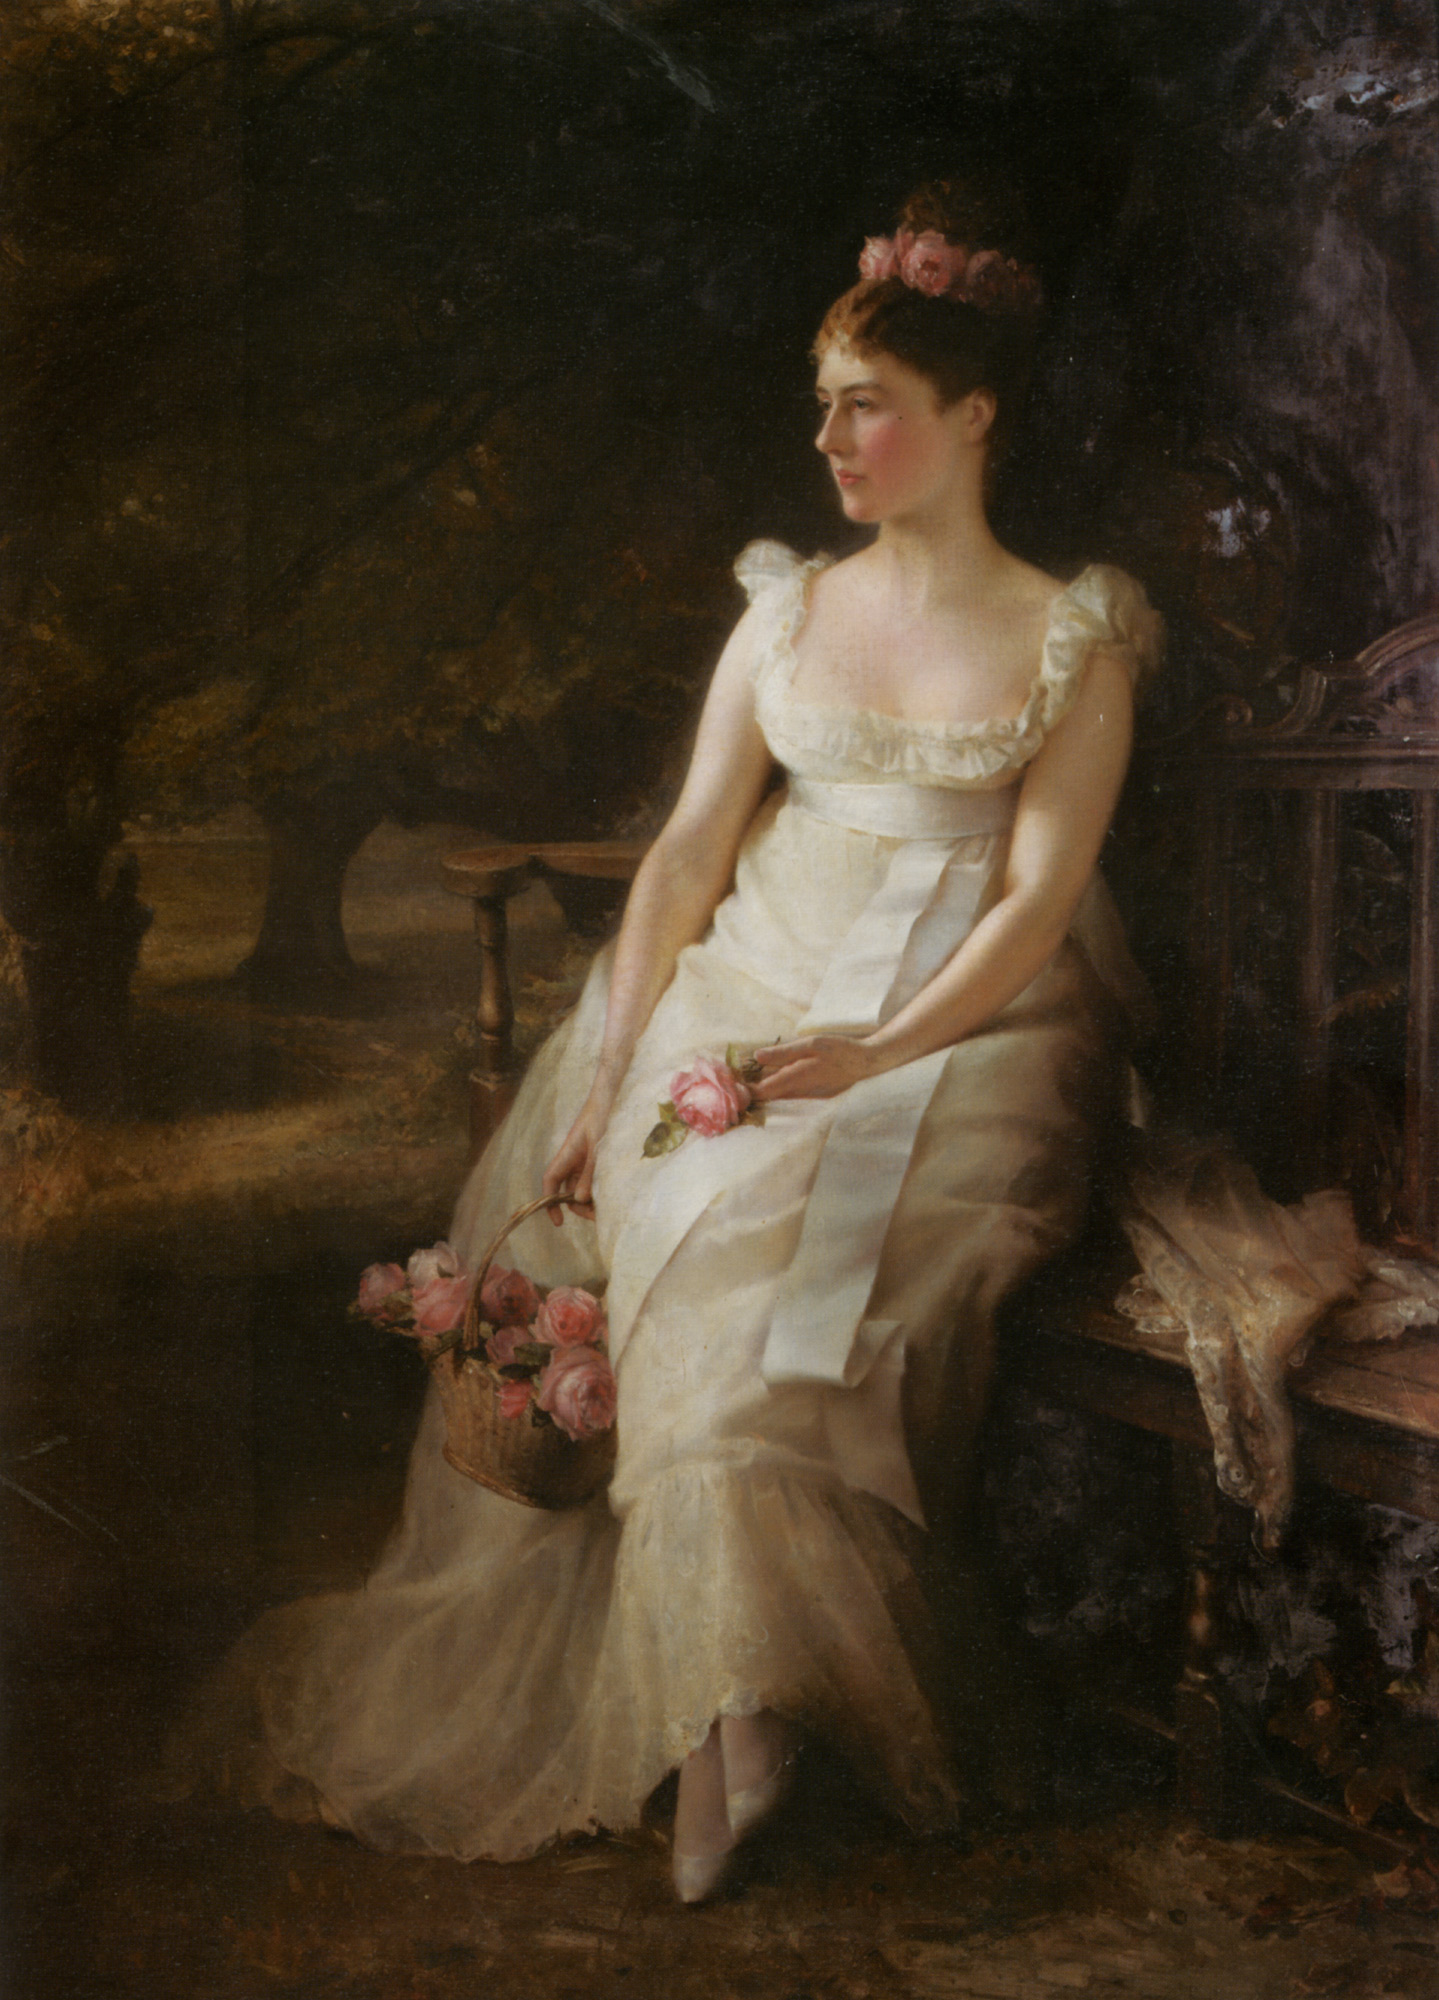 The sorrow and roses :: Edward Hughes - 7 female portraits ( the end of 19 centuries ) in art and painting ôîòî